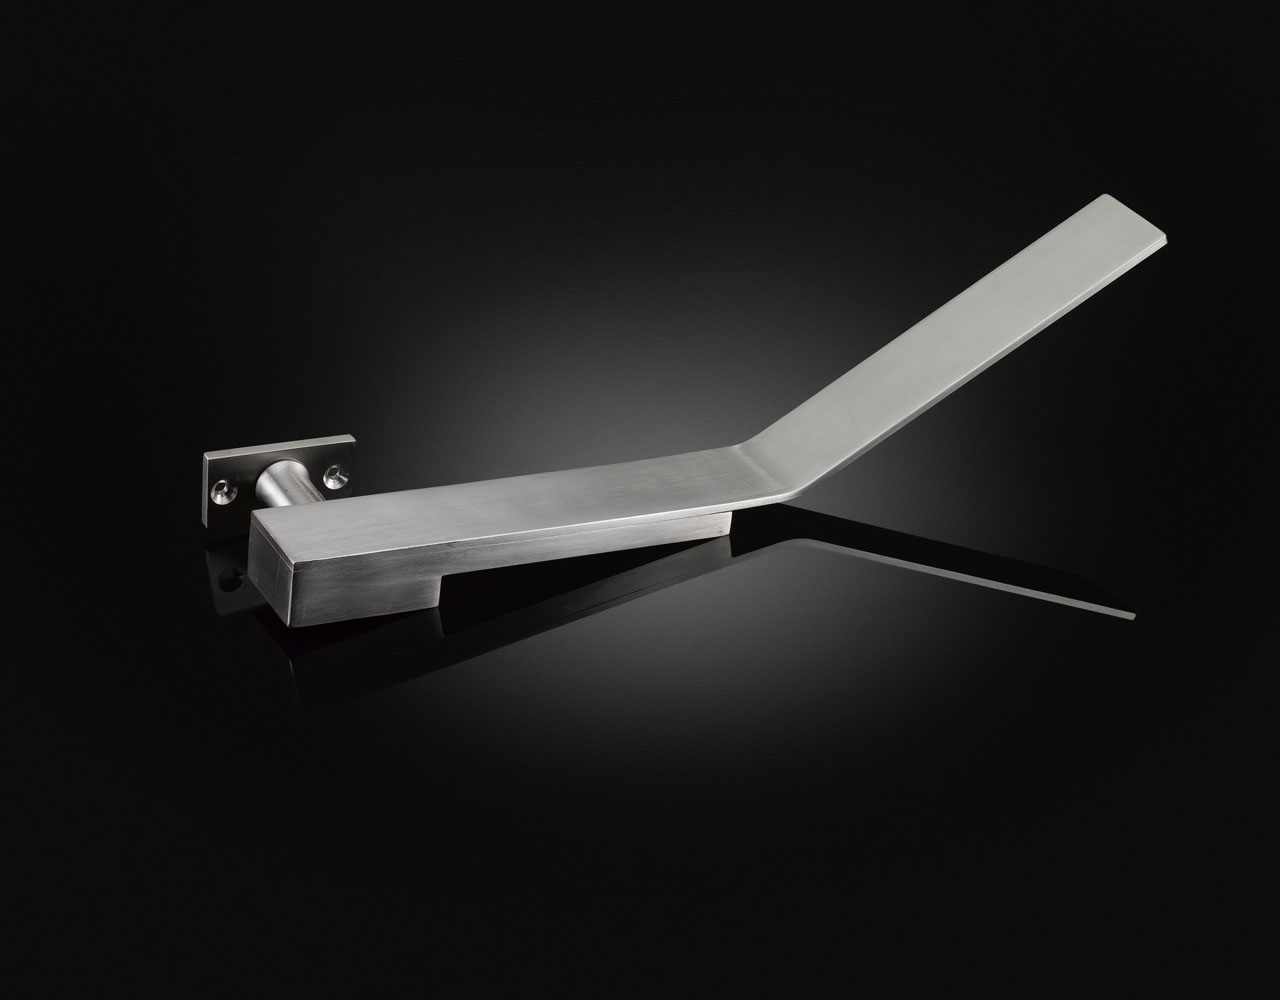 MKL01 Accessible luxury lever handle designed by MAKE Architects from izé in satin stainless steel